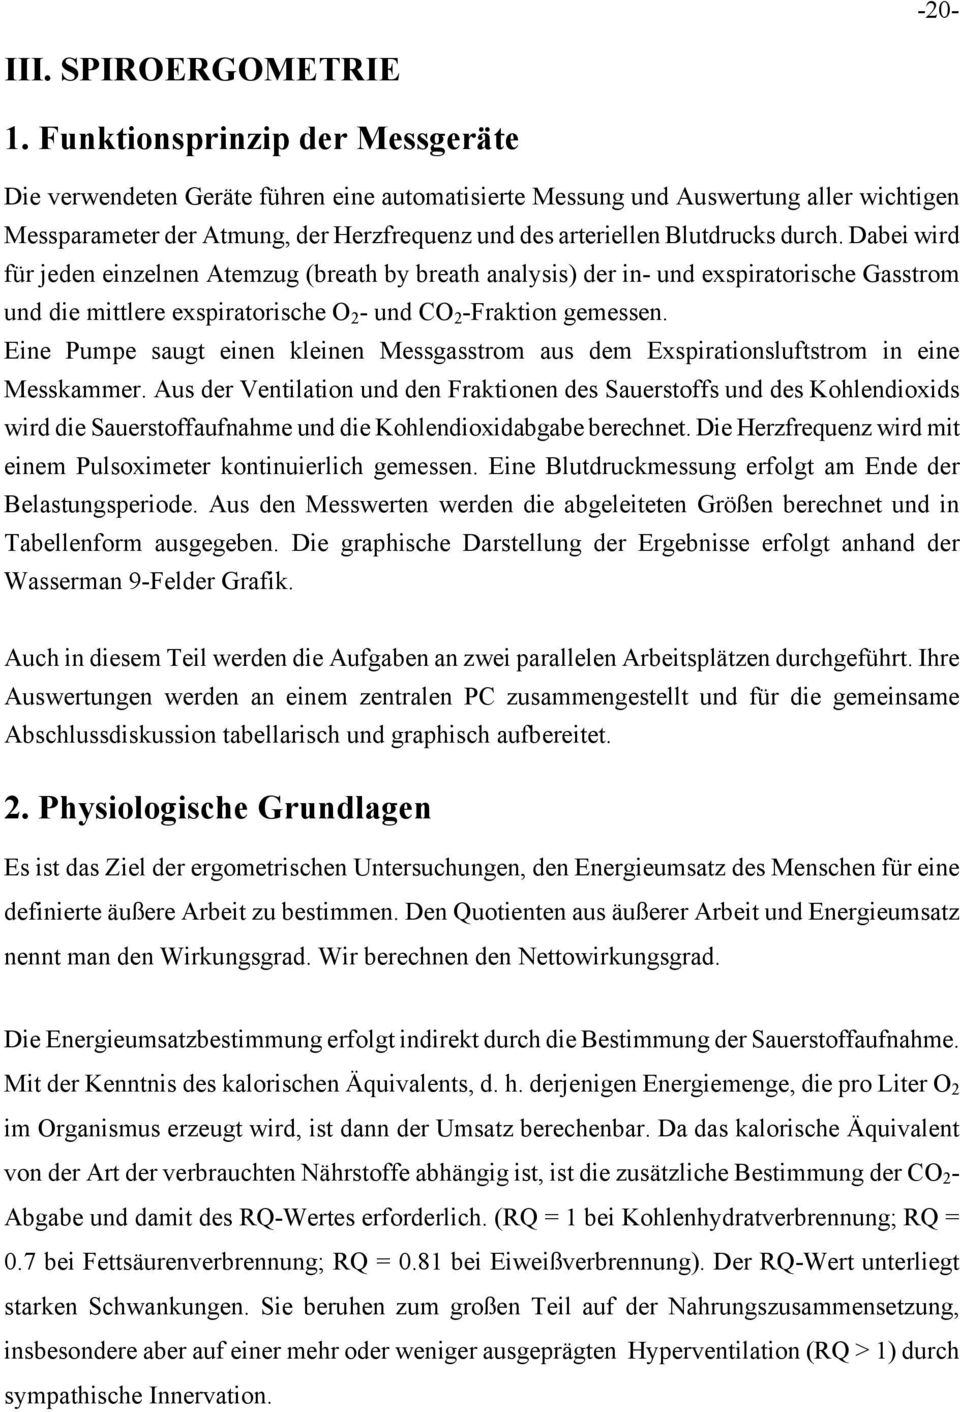 INSTITUT FÜR PHYSIOLOGIE - PDF